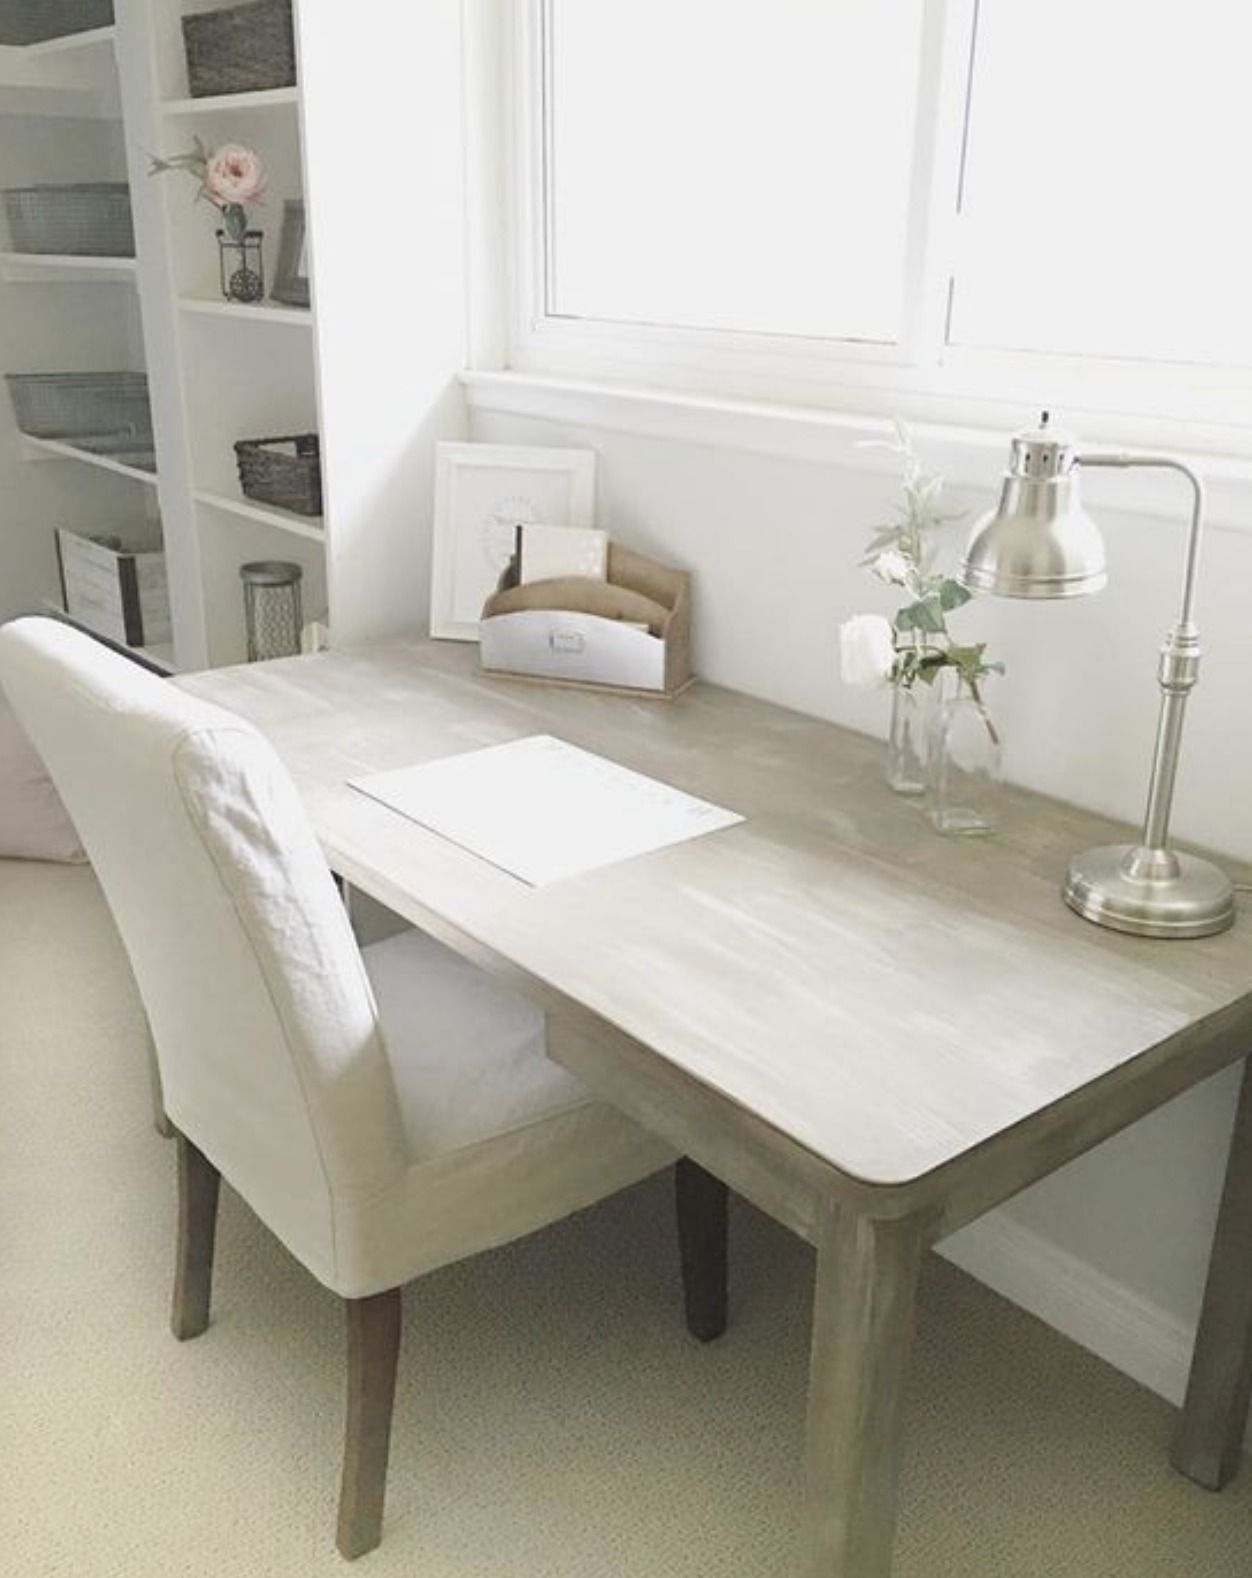 Old Rusted Table Was Transformed Into A Beautiful Office Desk With Chalk Paint Decorative